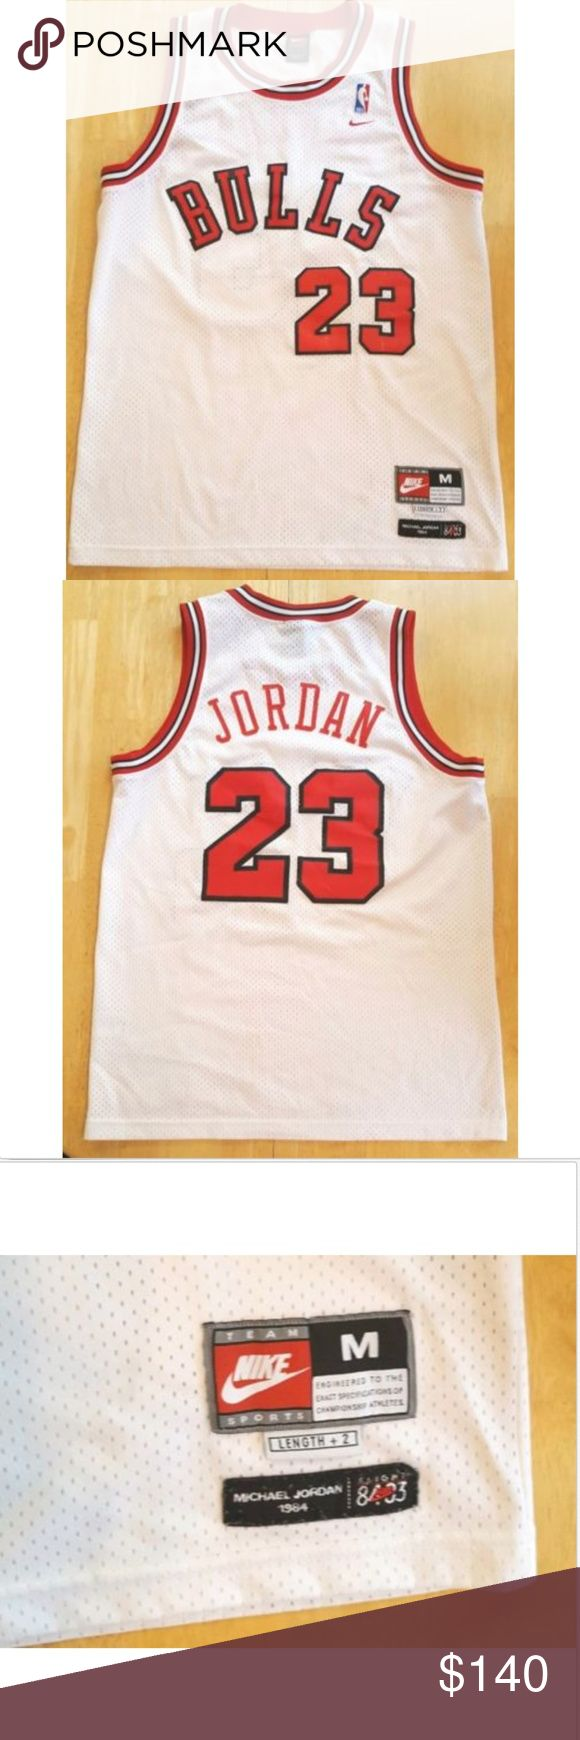 """Auth MICHAEL JORDAN BULLS Rookie Stitched Jersey 100% authentic Nike Chicago Bulls NBA Michael Jordan rookie jersey! Men's size medium, length +2. Stitched! """"BULLS 23"""" stitched on front, and """"JORDAN 23"""" stitched on back. Good pre-owned condition, see pictures. Nike Shirts Tank Tops"""